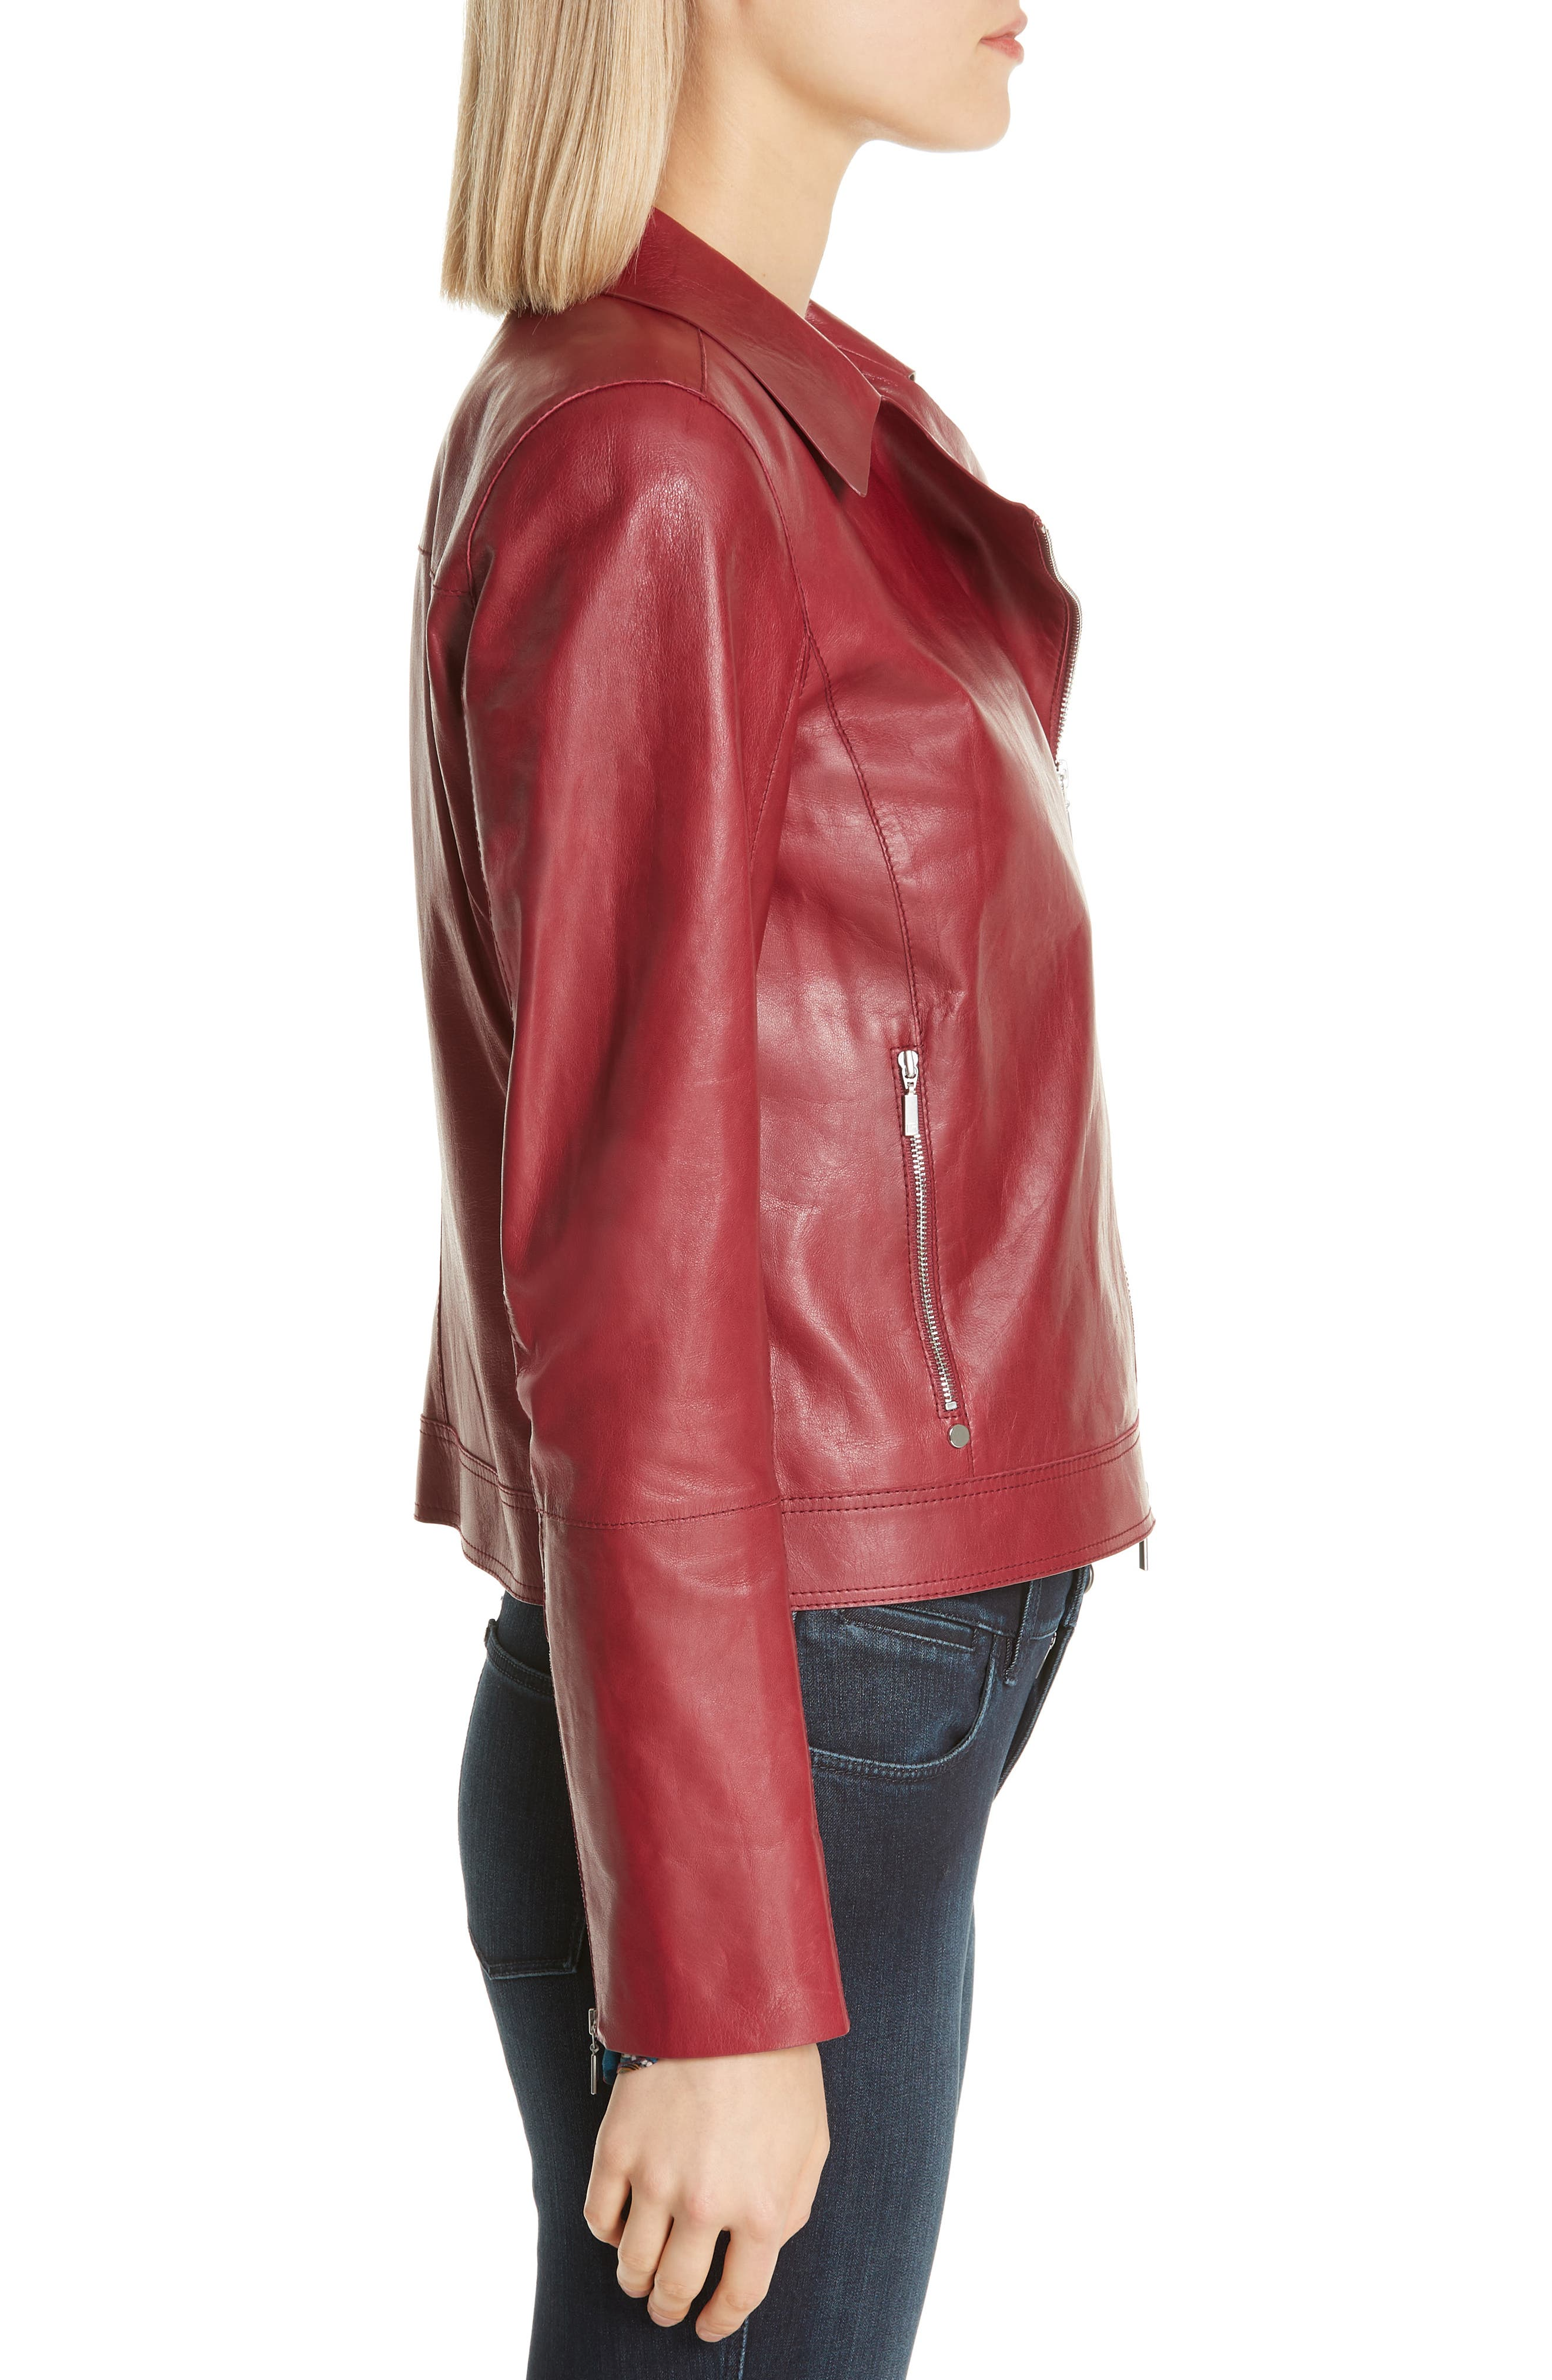 LAFAYETTE 148 NEW YORK, Marykate Leather Moto Jacket, Alternate thumbnail 3, color, 600